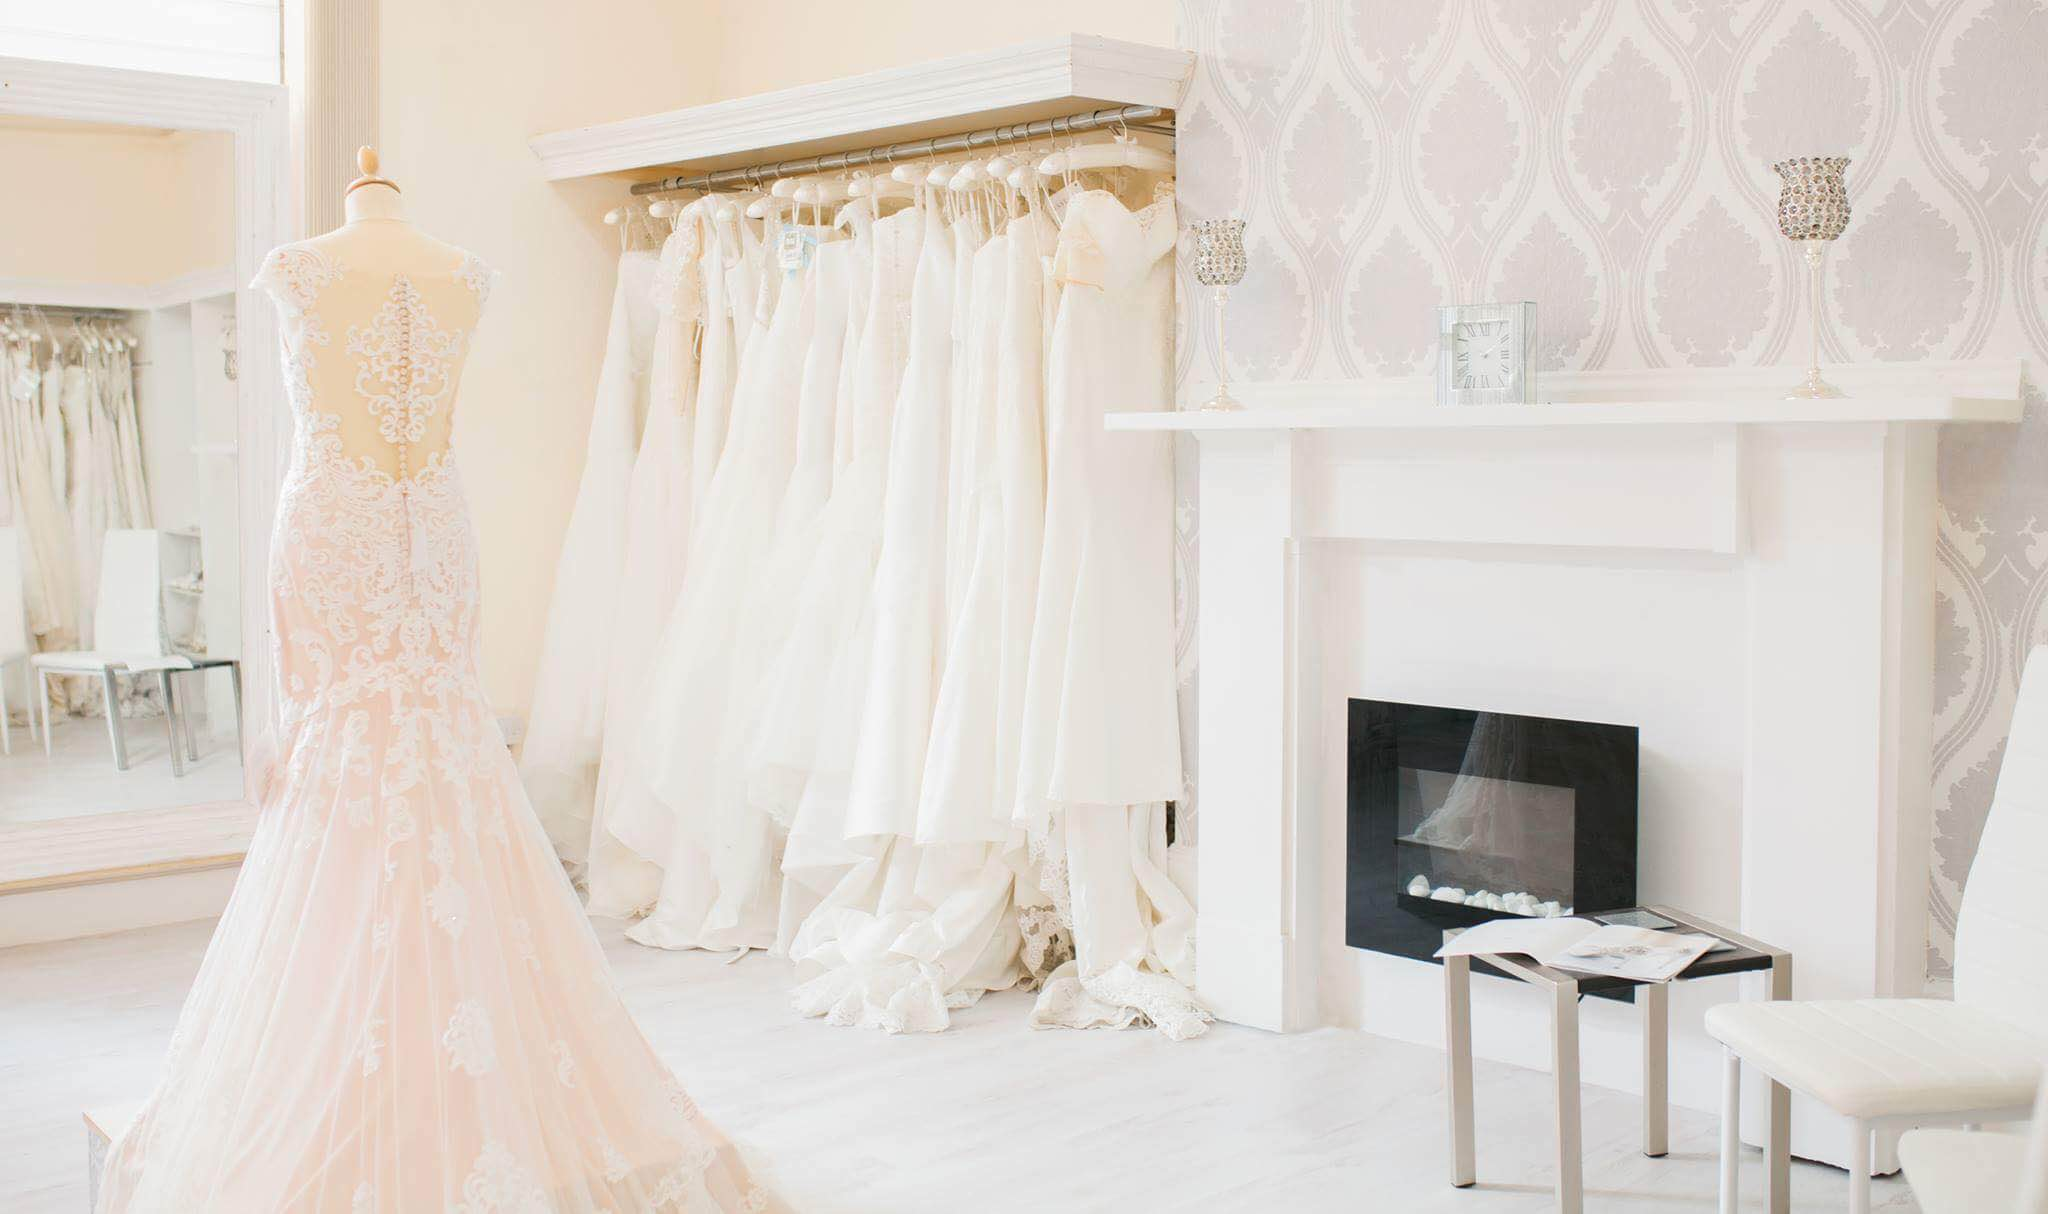 Bridal Boutique, Melton Mowbray, Gina Dover Jacques